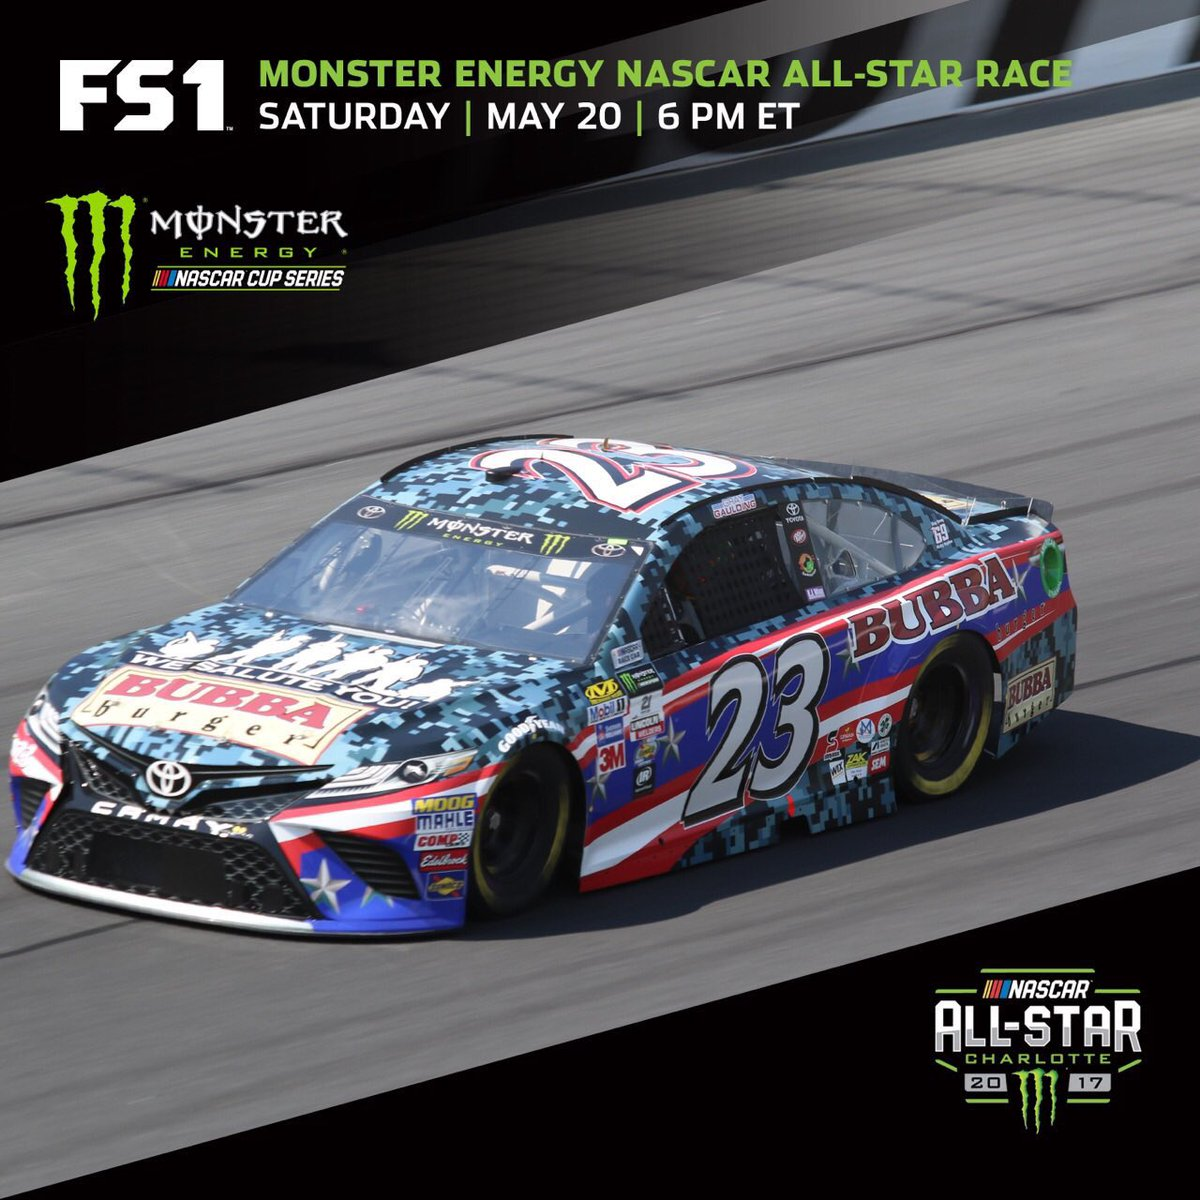 @Bubbaburger @graygaulding Absolutely awesome doesn&#39;t get any better than this  sponsor #AllStarRace #NASCARDay #NASCARonFS1 Guys Rock <br>http://pic.twitter.com/x24u0BtJDc